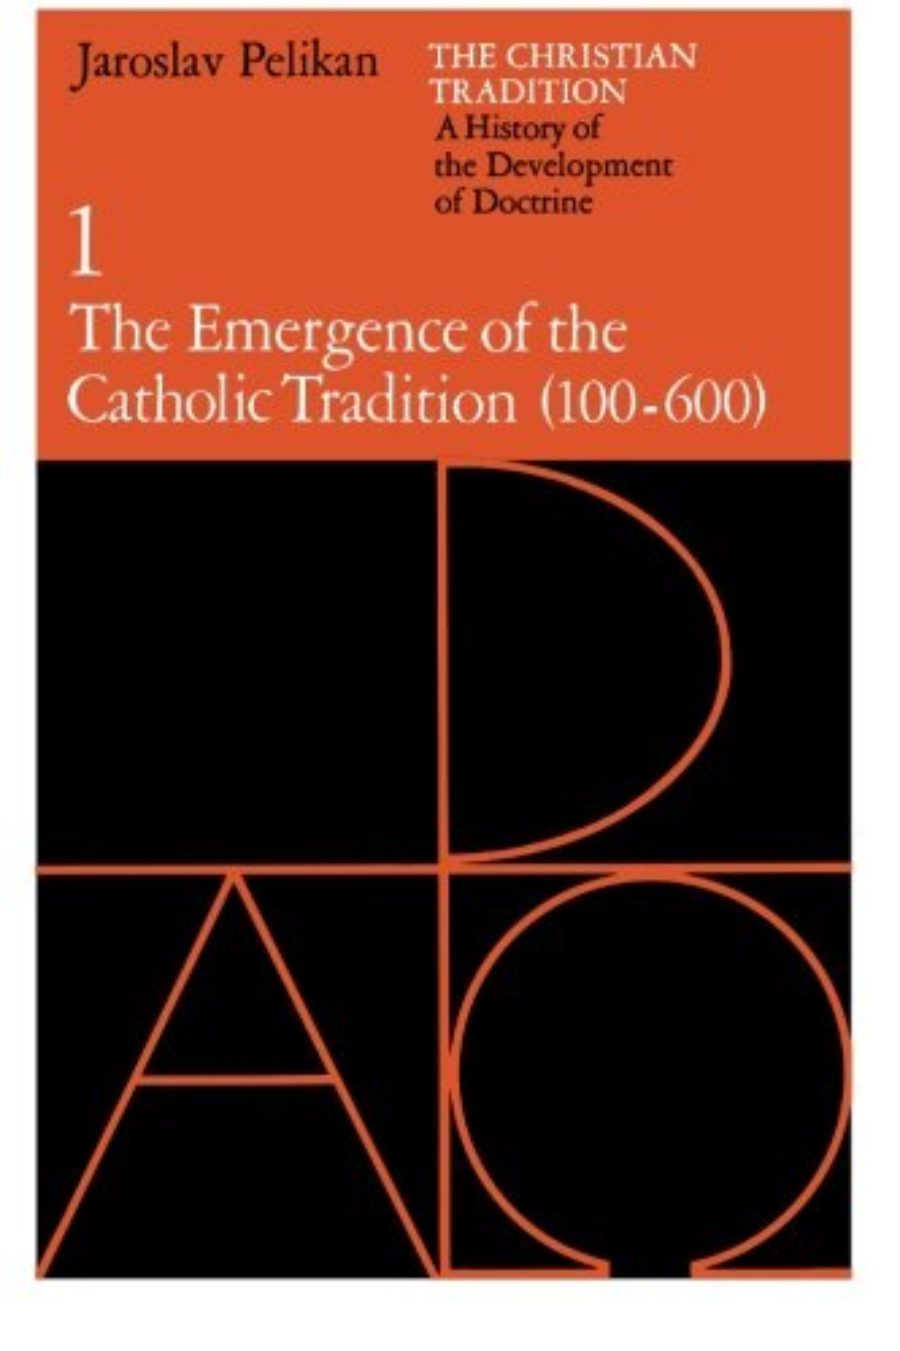 Cover of The Christian Tradition: A History of the Development of Doctrine, Vol. 1: The Emergence of the Catholic Tradition (100-600)